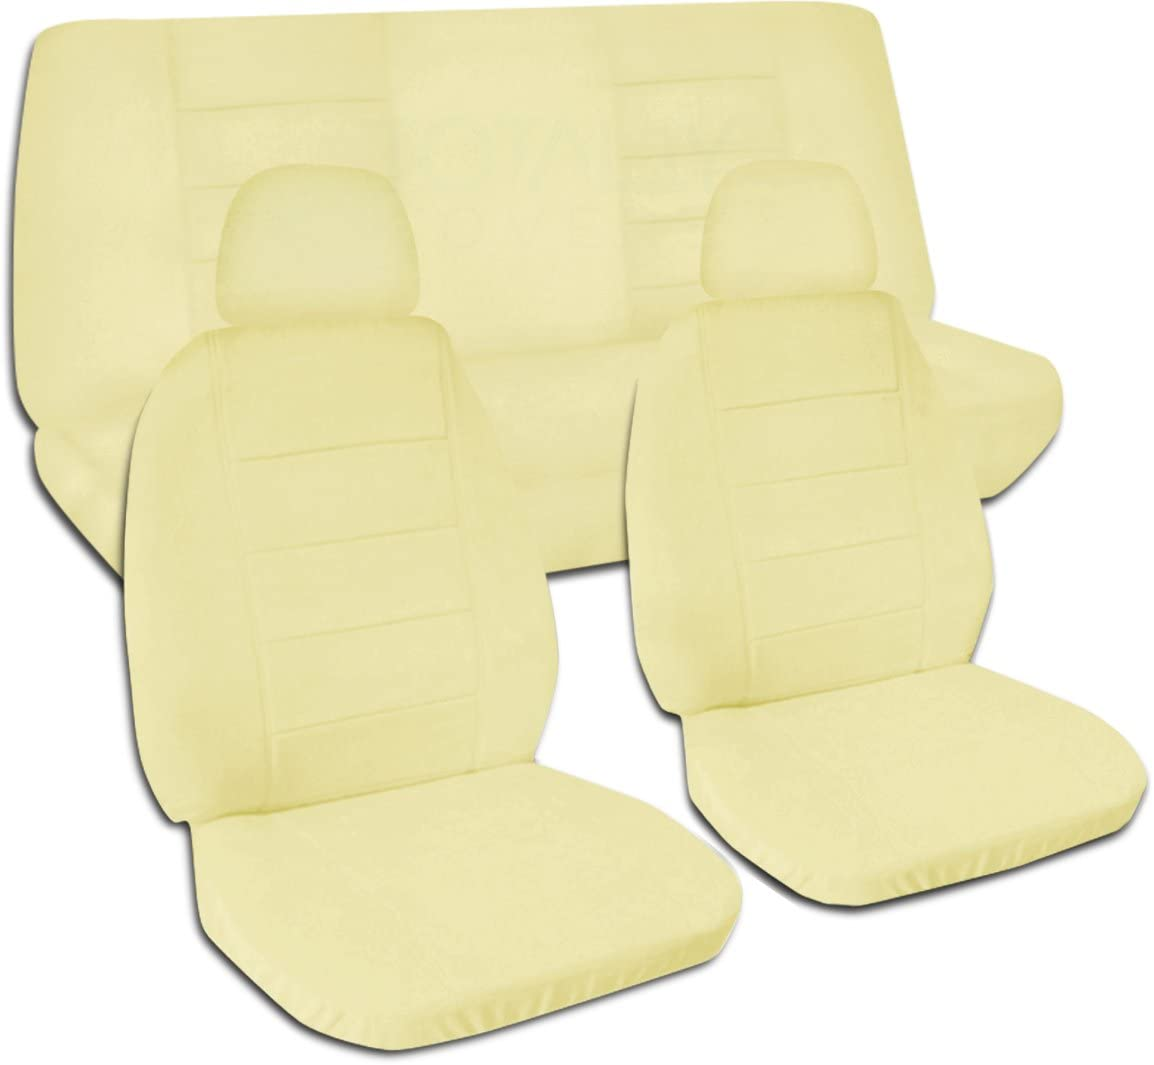 Totally Covers Solid Color Car Seat Covers w 2 Front Headrest Covers: Cream - Semi-Custom Fit - Full Set - Will Make Fit Any Car/Truck/Van/RV/SUV (22 Colors)